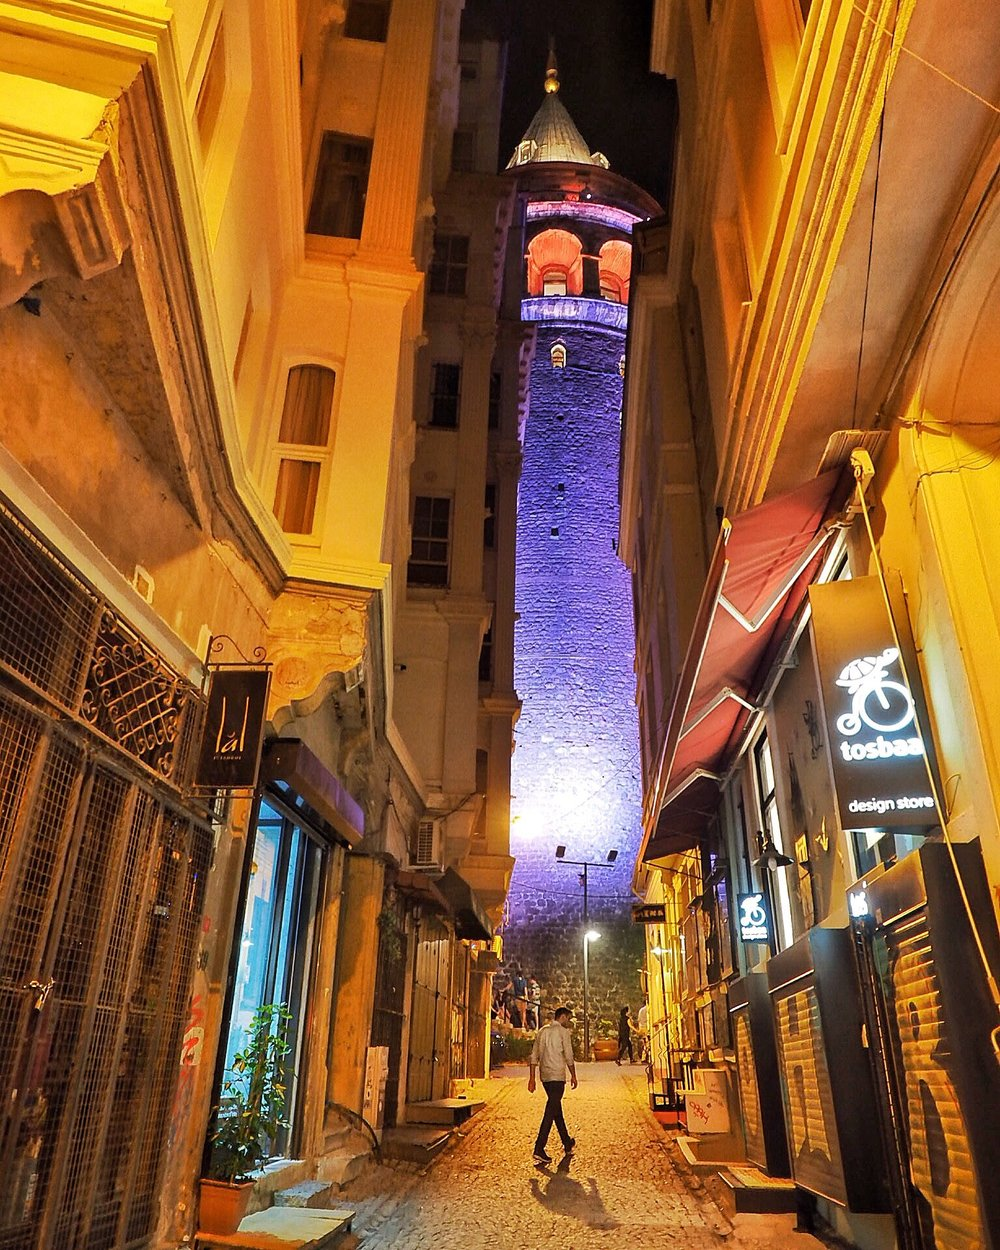 A visitor strolls along a nearly empty street beneath Istanbul's ancient Galata Tower. (Photo by Laura Bly)